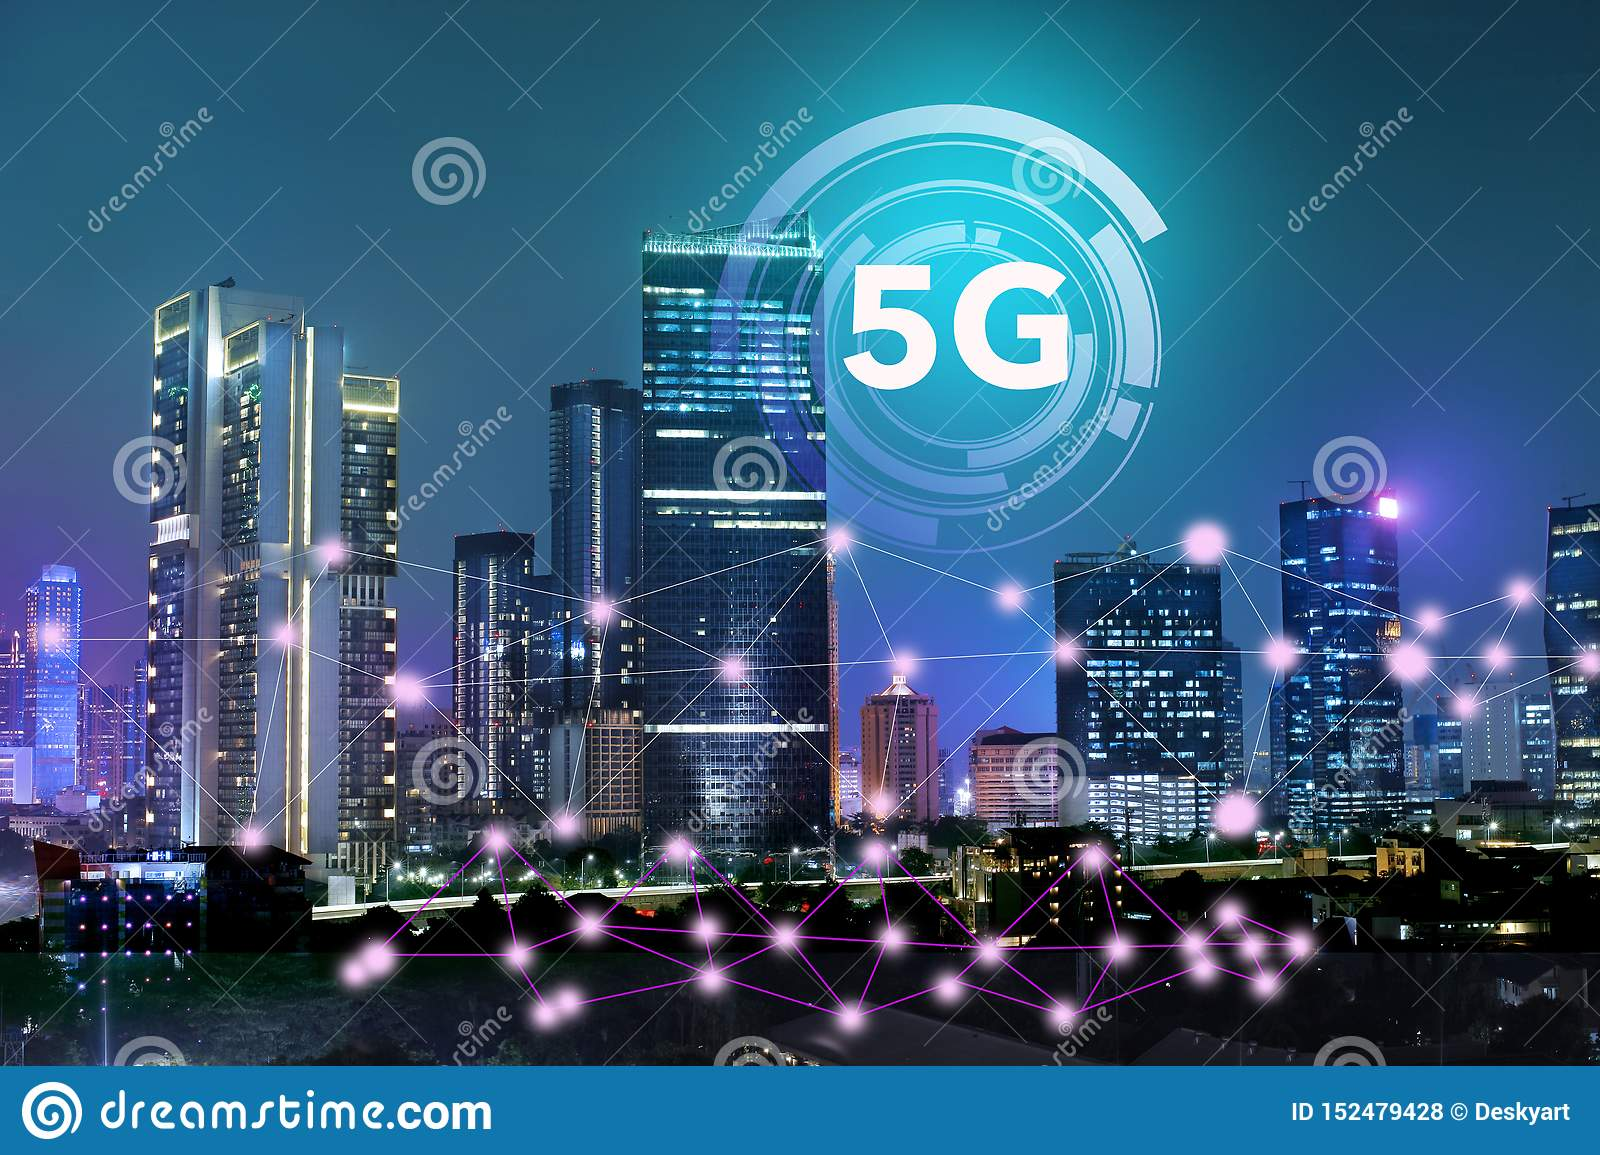 The internet network on the 5G technology system on business buildings and skyscrapers as the business center of the city of